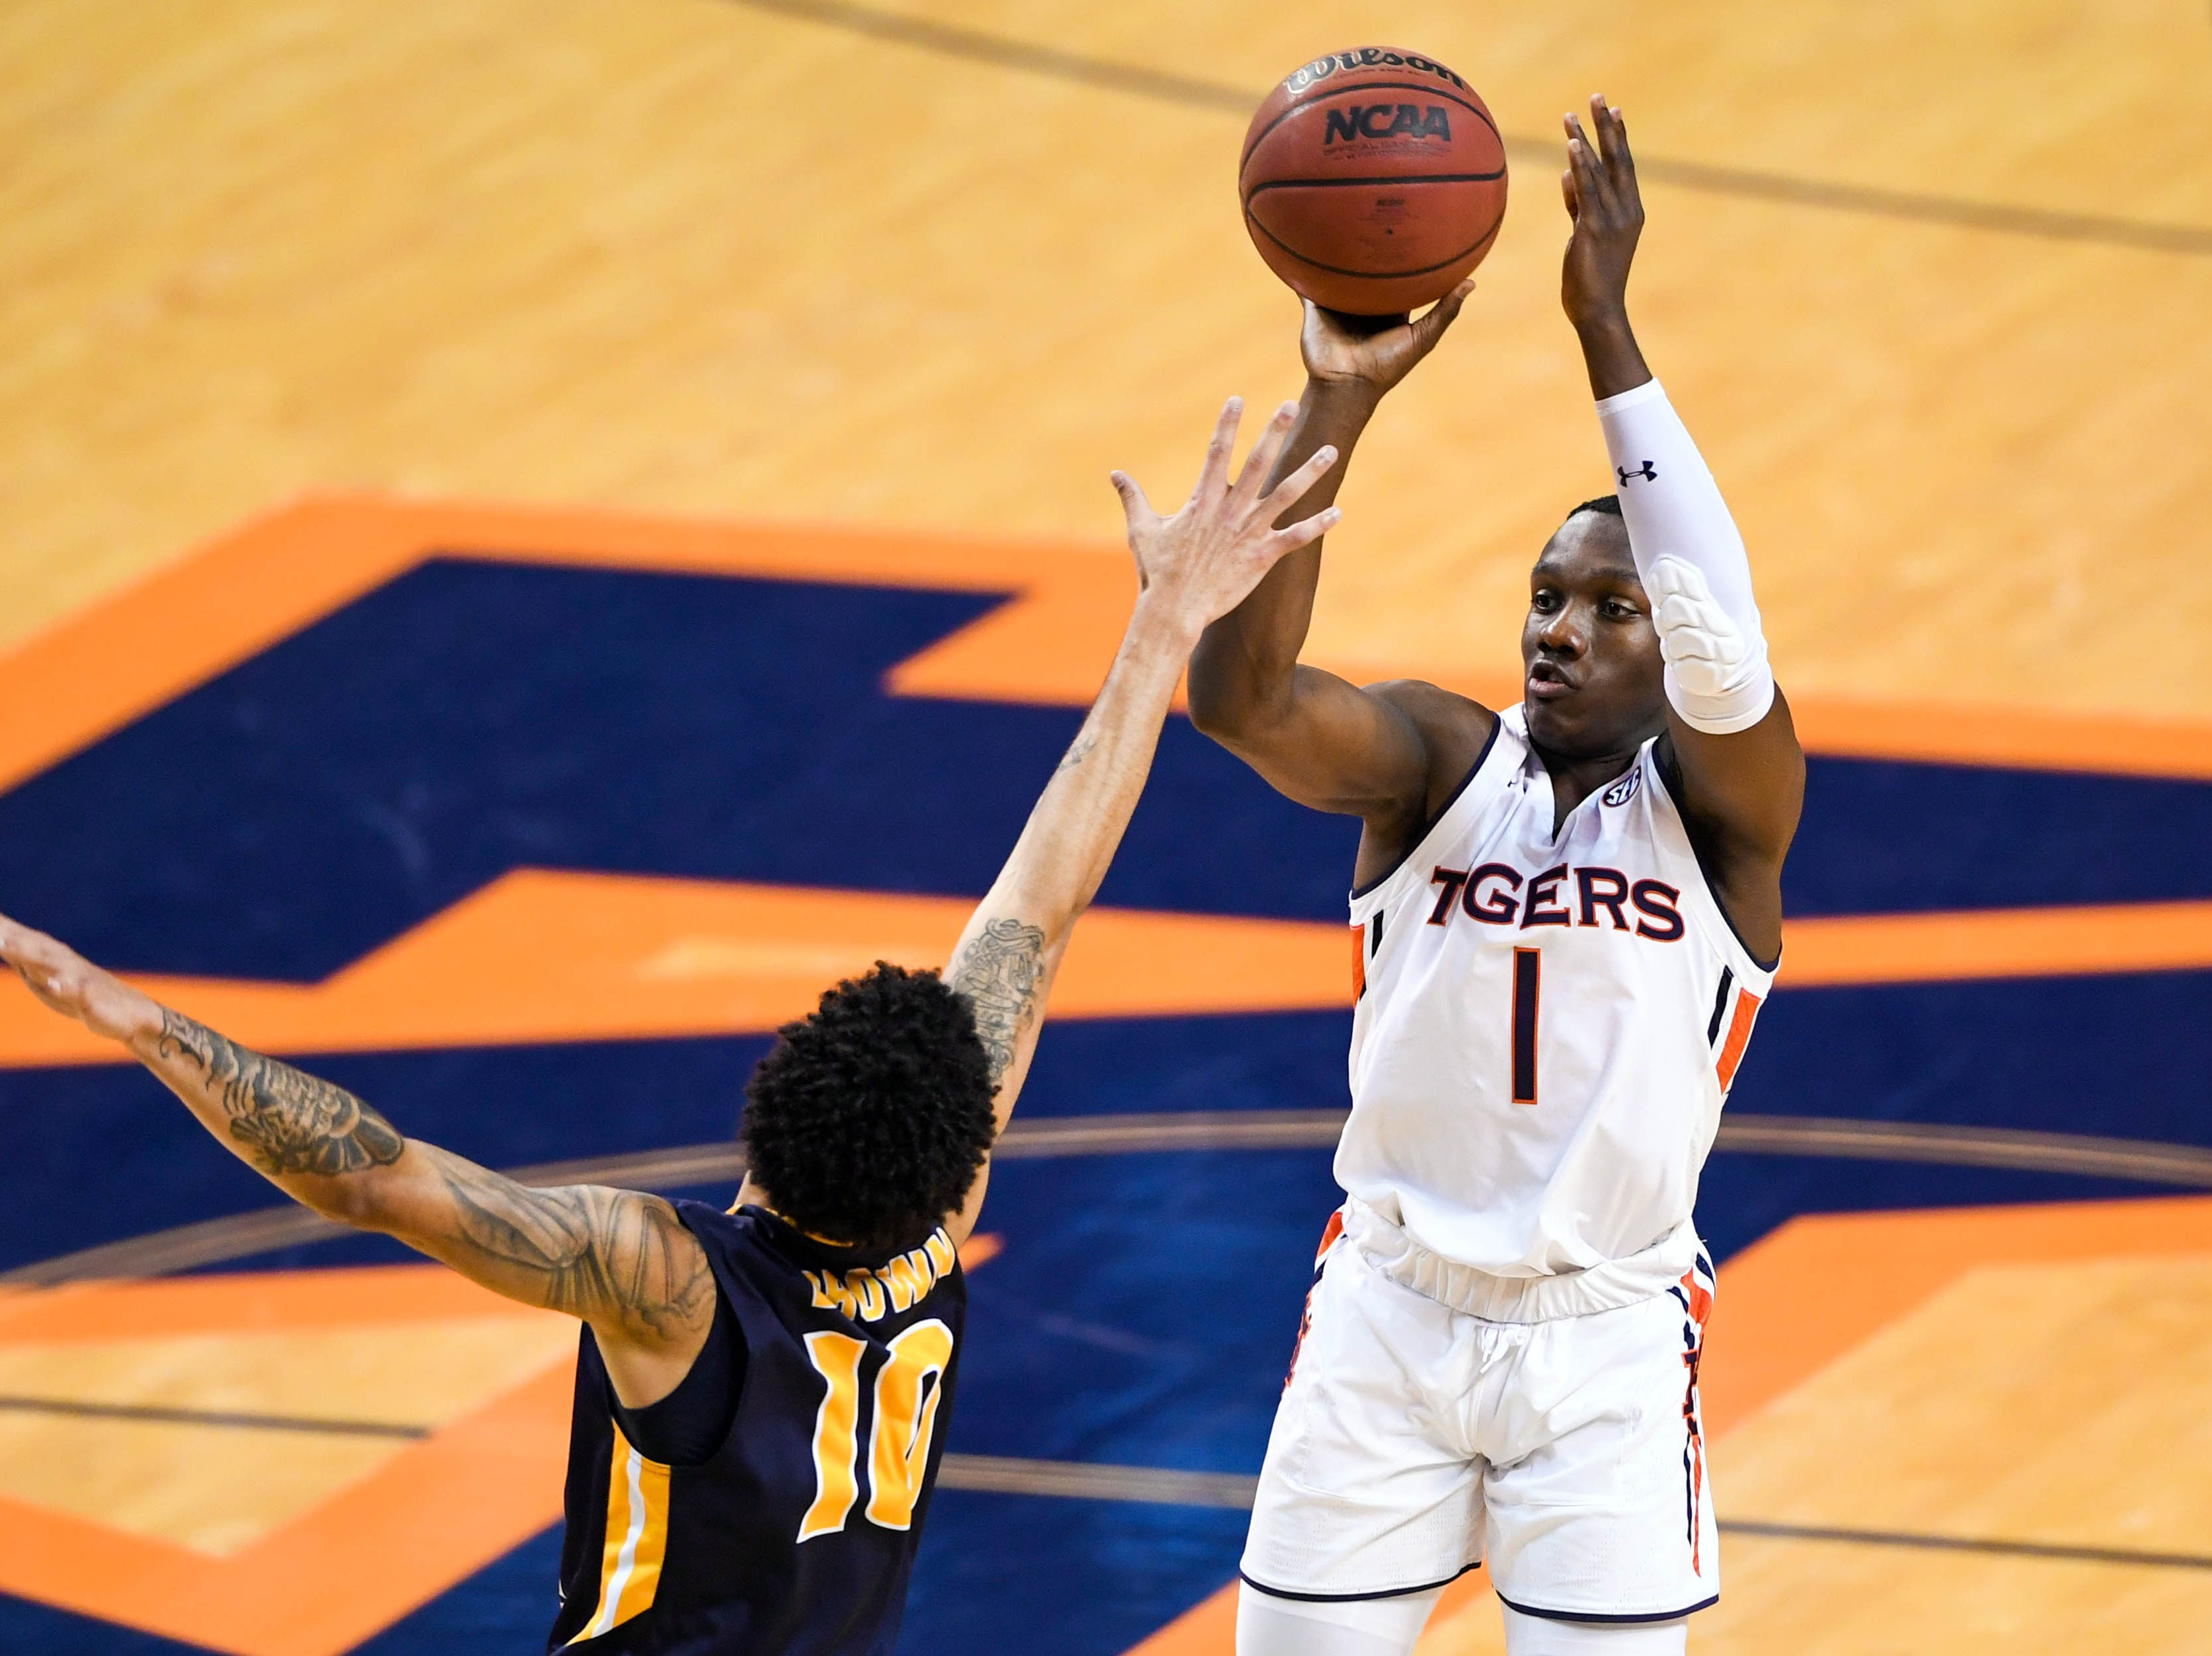 Dec 22, 2018; Auburn, AL, USA; Auburn Tigers guard Jared Harper (1) shoots over Murray State Racers guard Tevin Brown (10) during the second half at Auburn Arena. Mandatory Credit: Shanna Lockwood-USA TODAY Sports